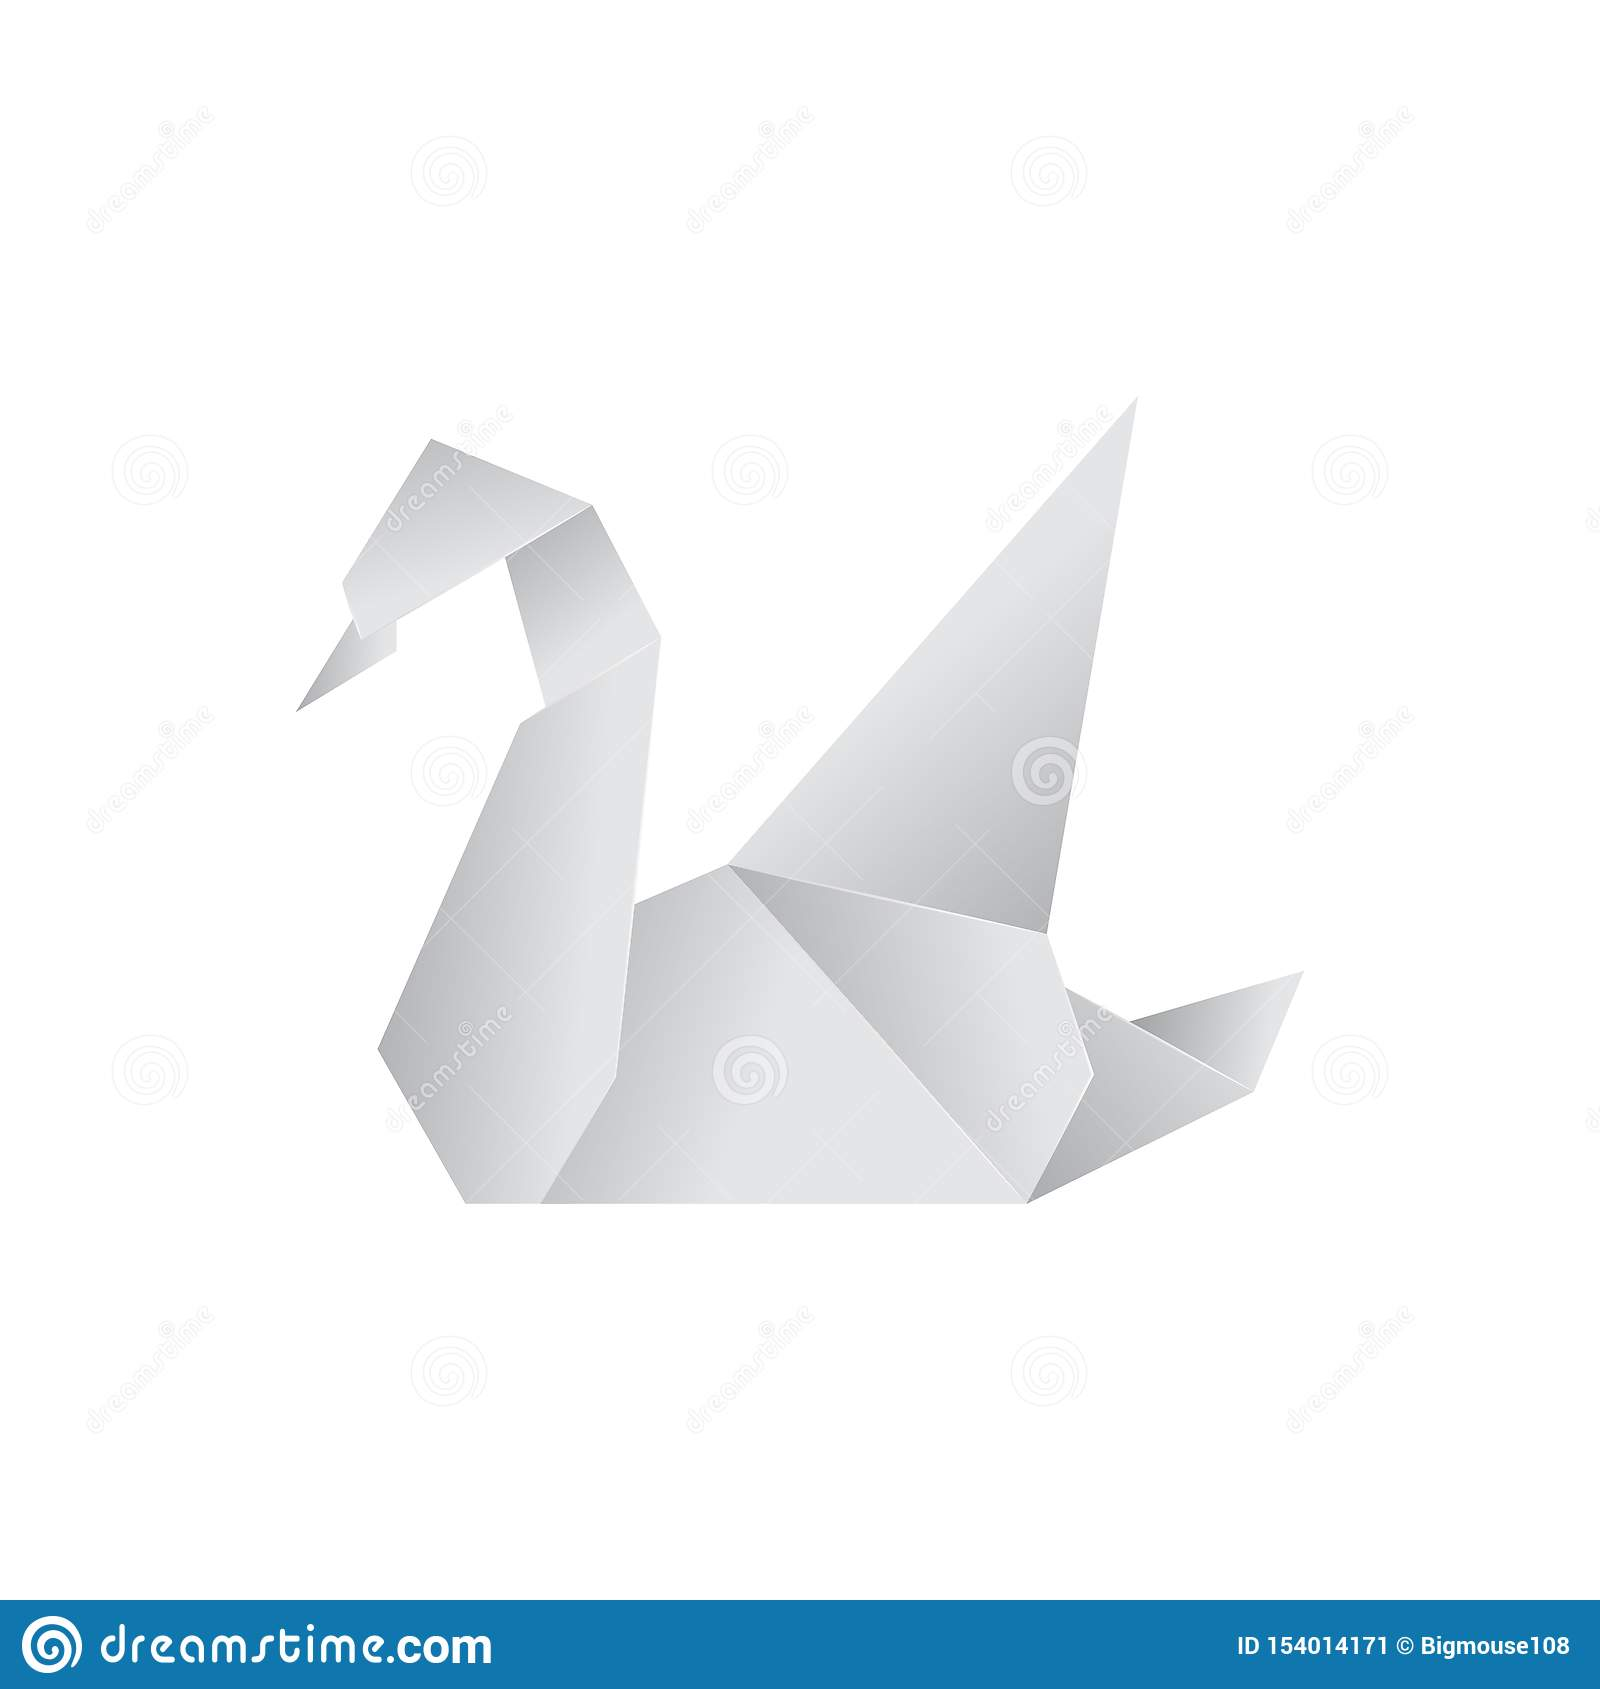 Realistic Detailed 3d Origami Paper Animal Swan. Vector